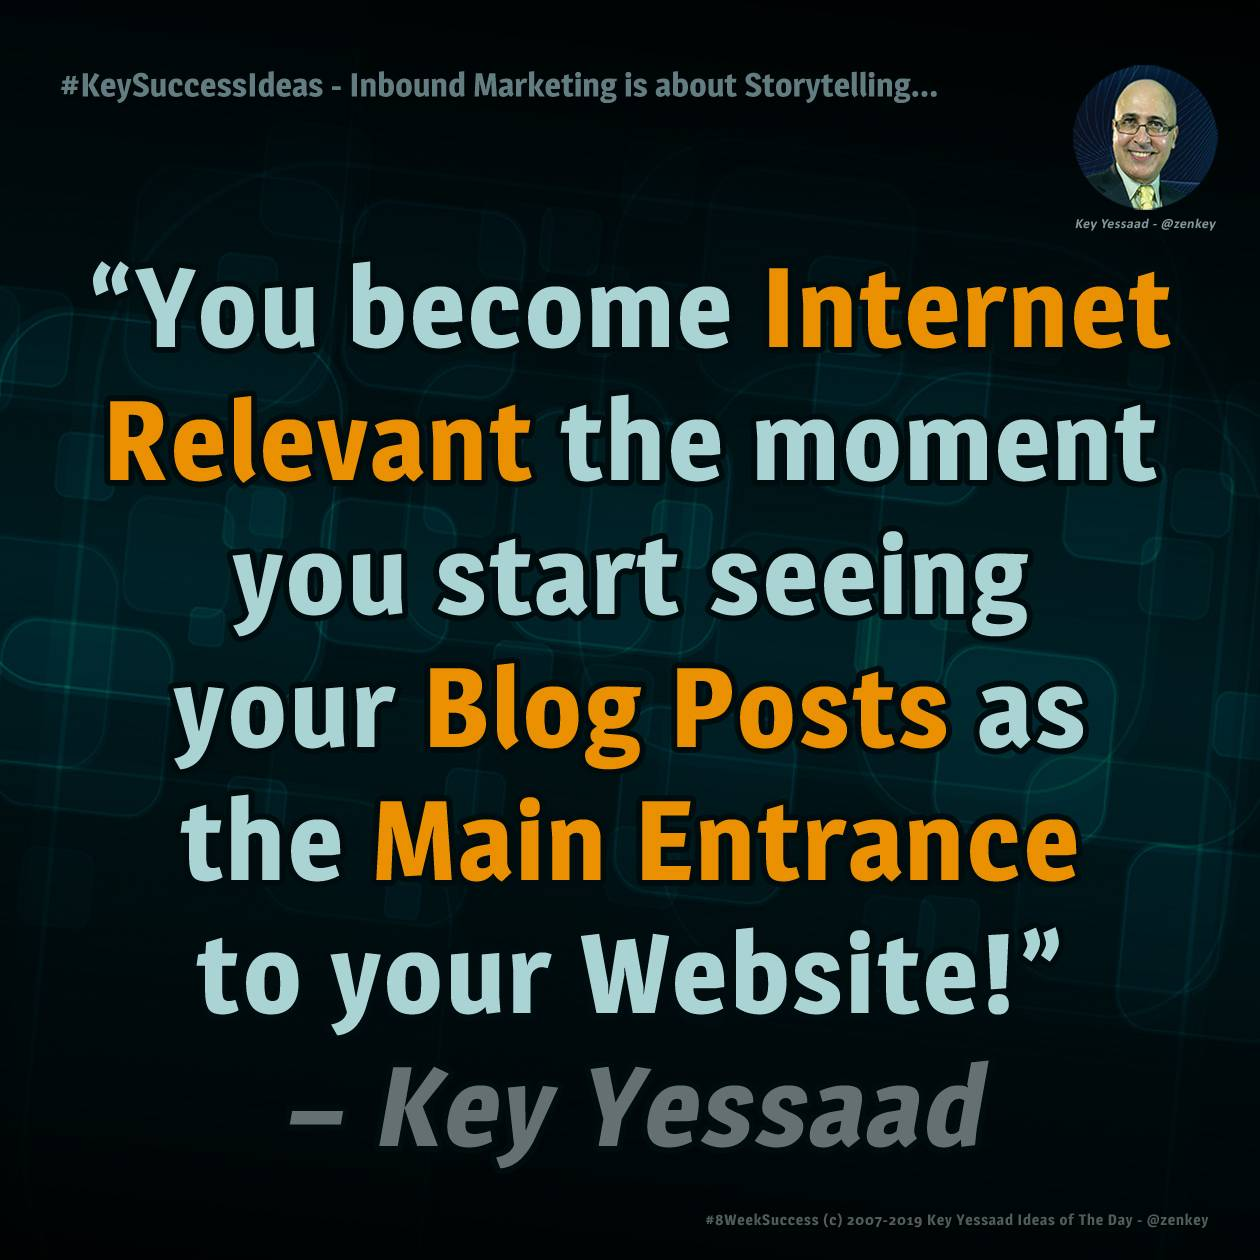 #KeySuccessIdeas - Inbound Marketing is about Storytelling...